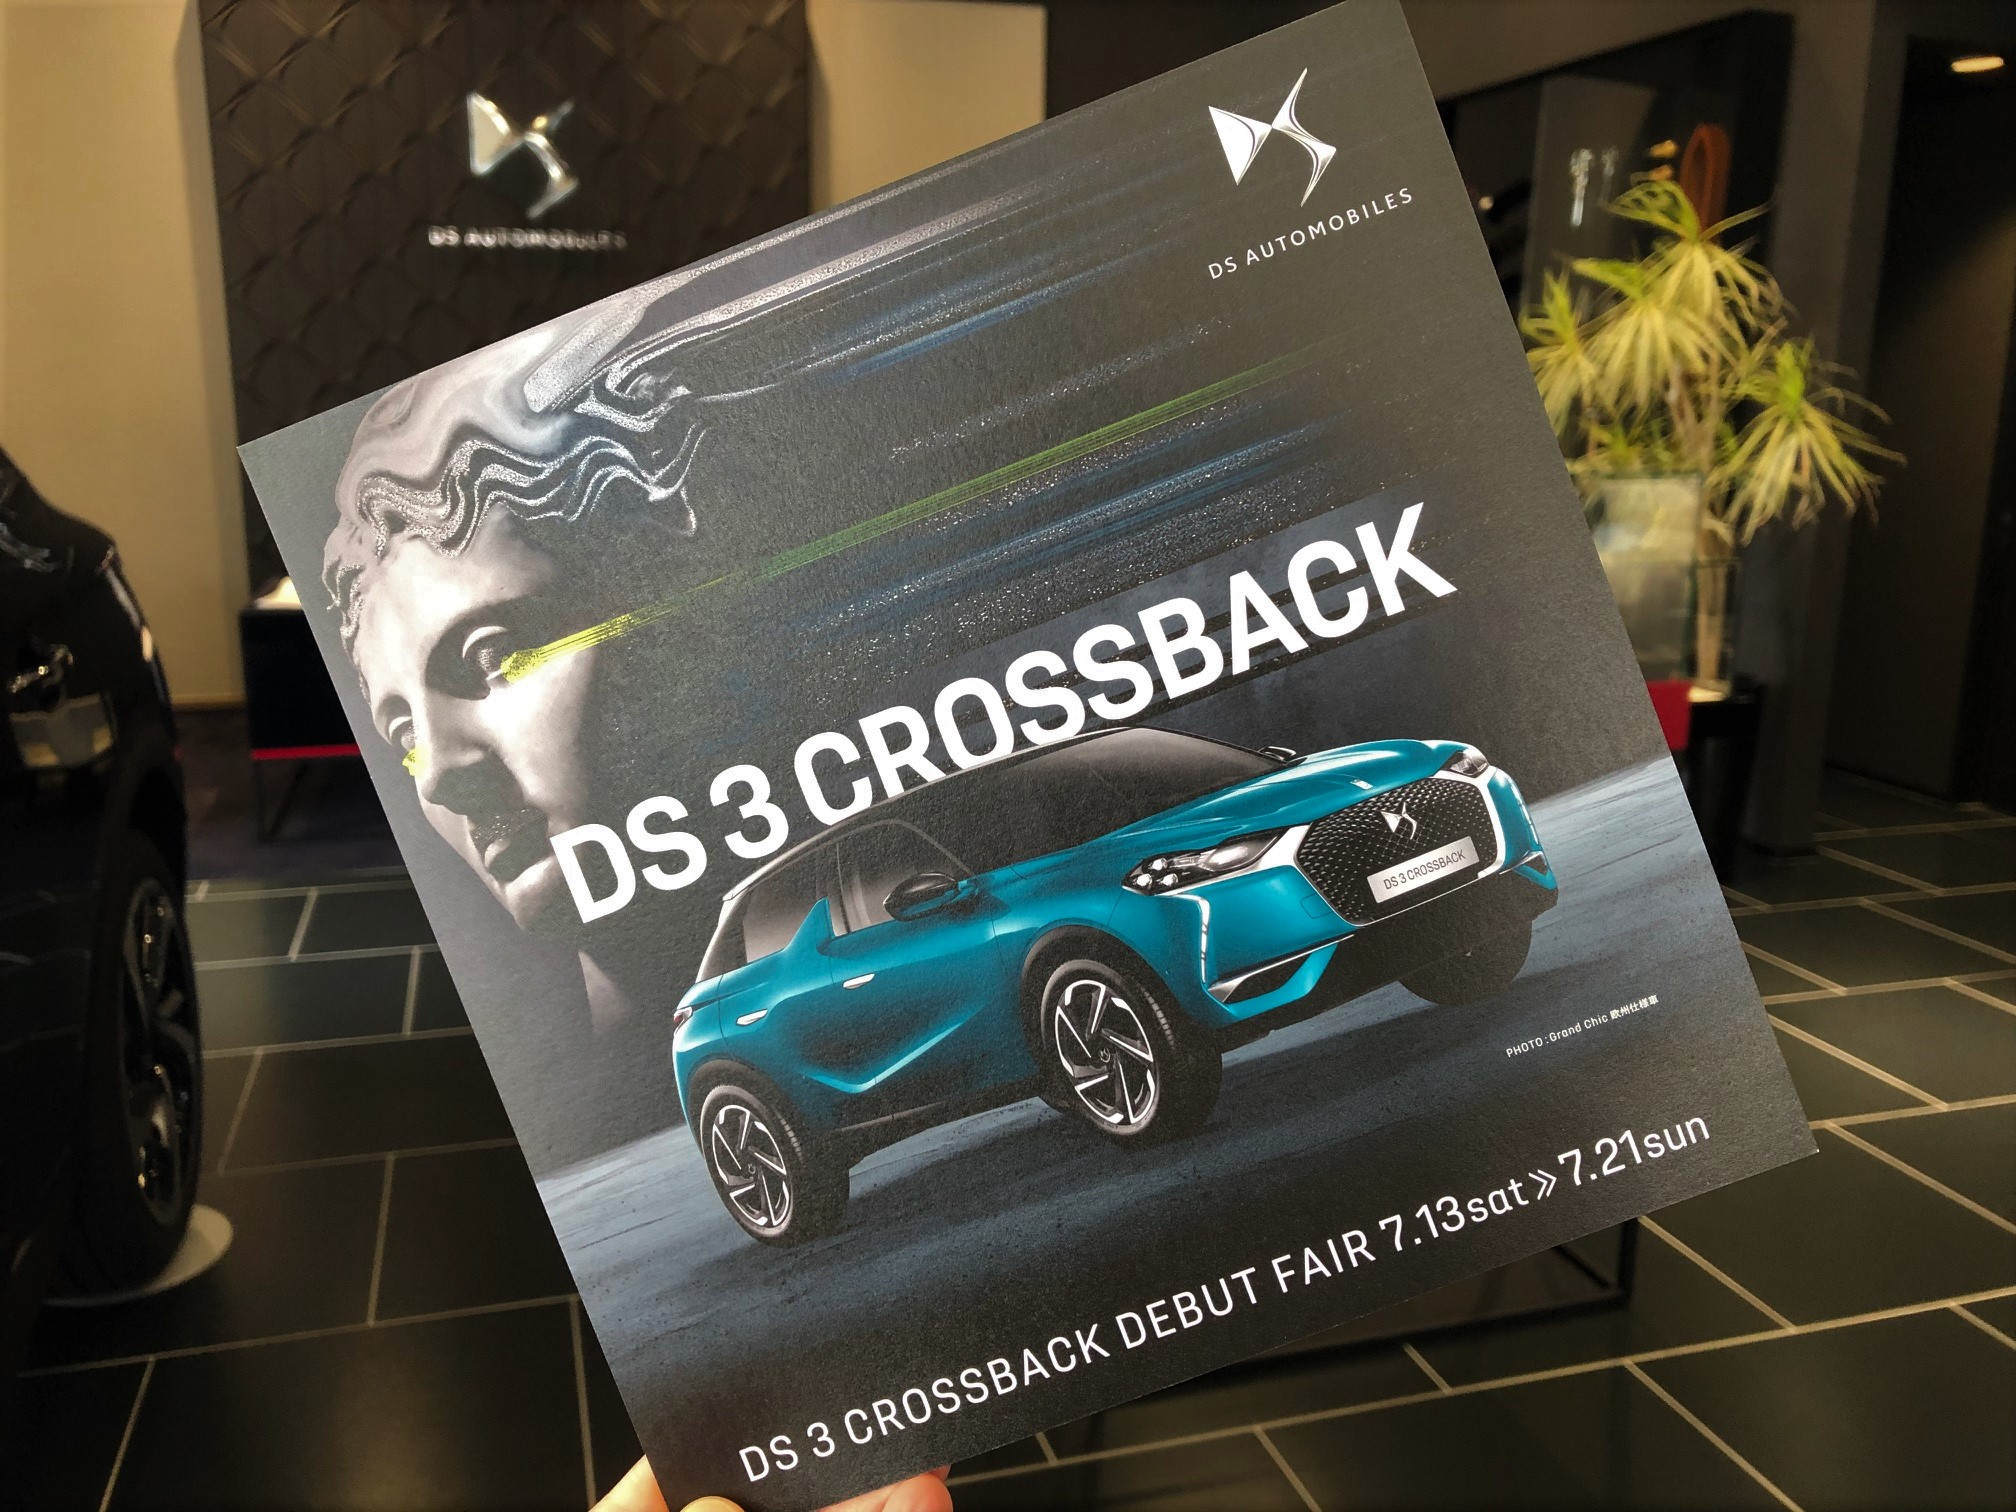 DS3 CROSSBACK DEBUT FAIR !!